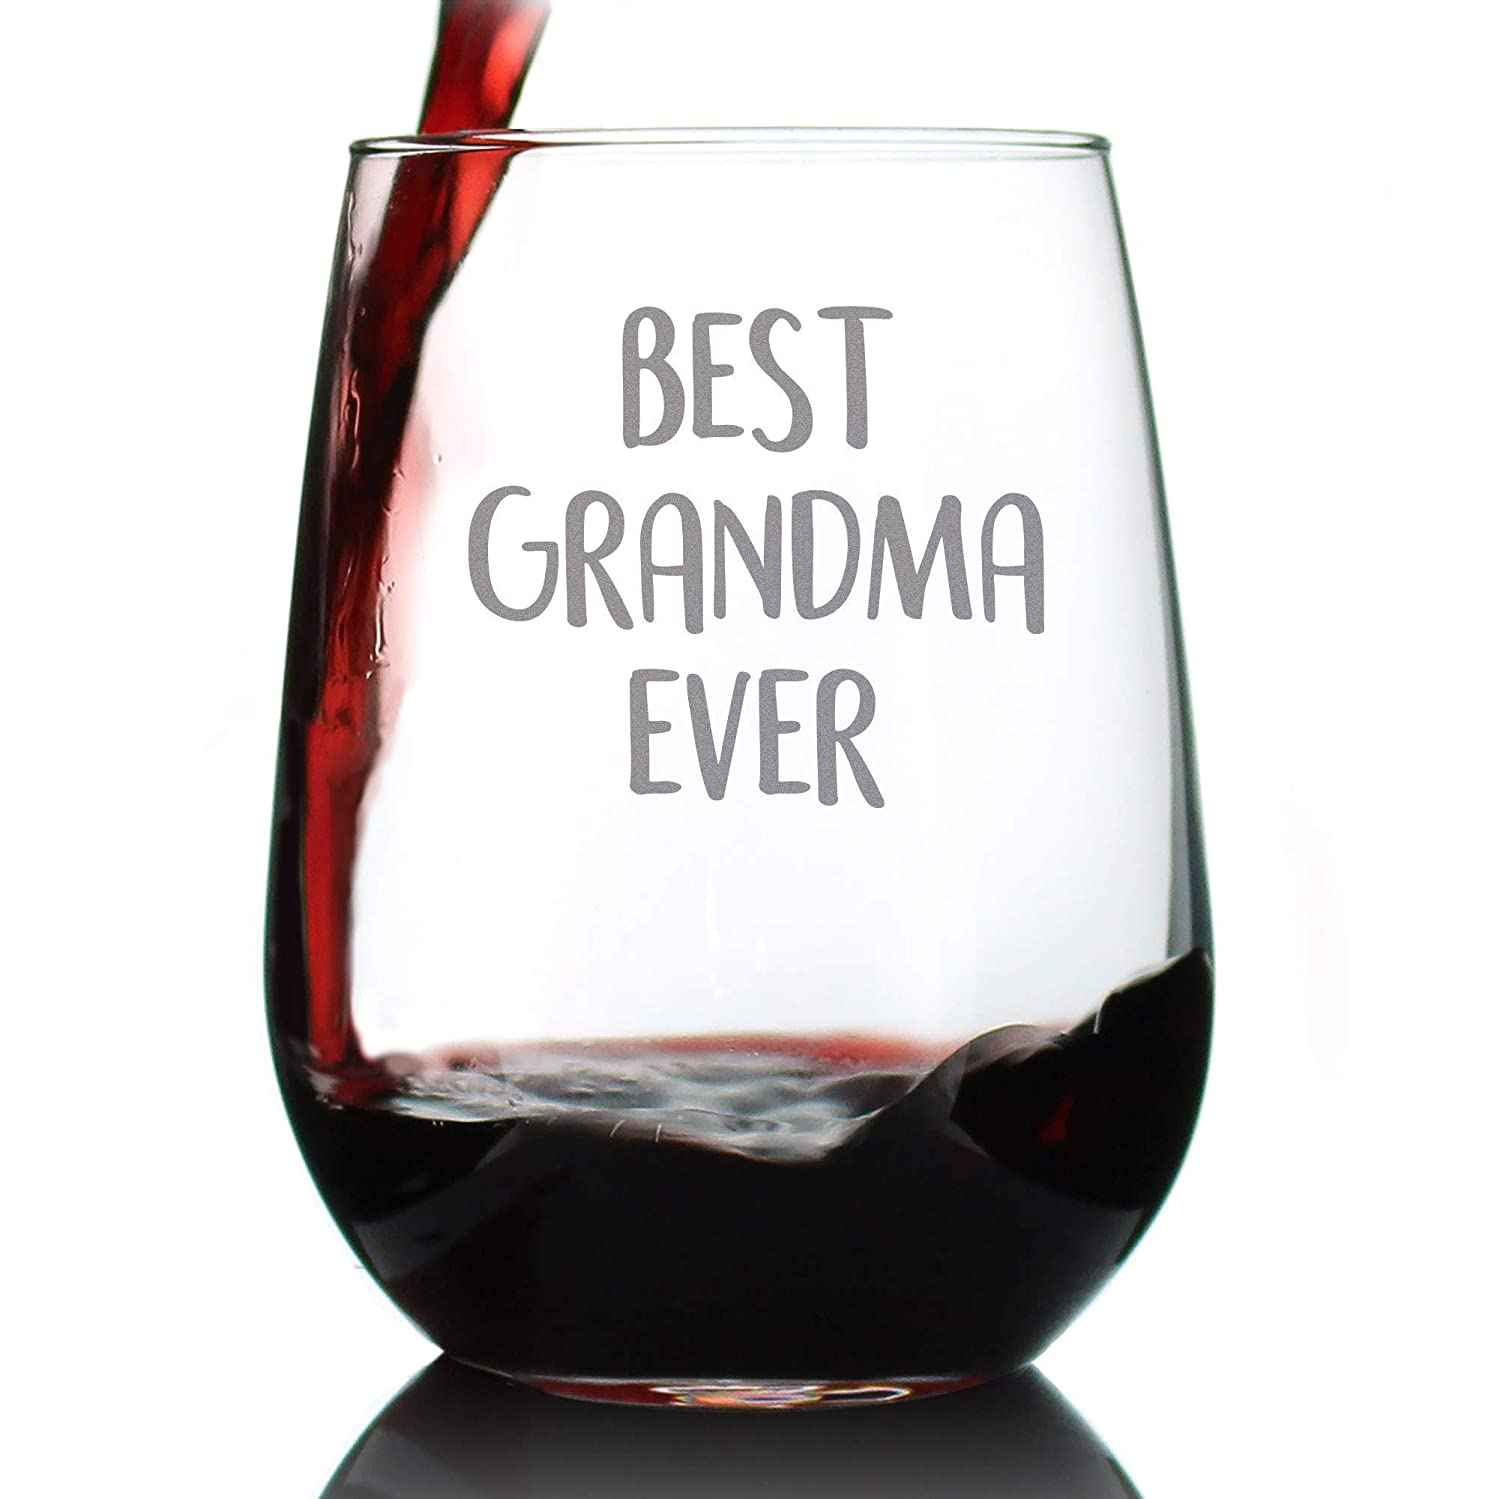 Best Grandma Limited Special Price Ever - Cute Stemless Grandmothe Glass for Gift Wine Max 79% OFF